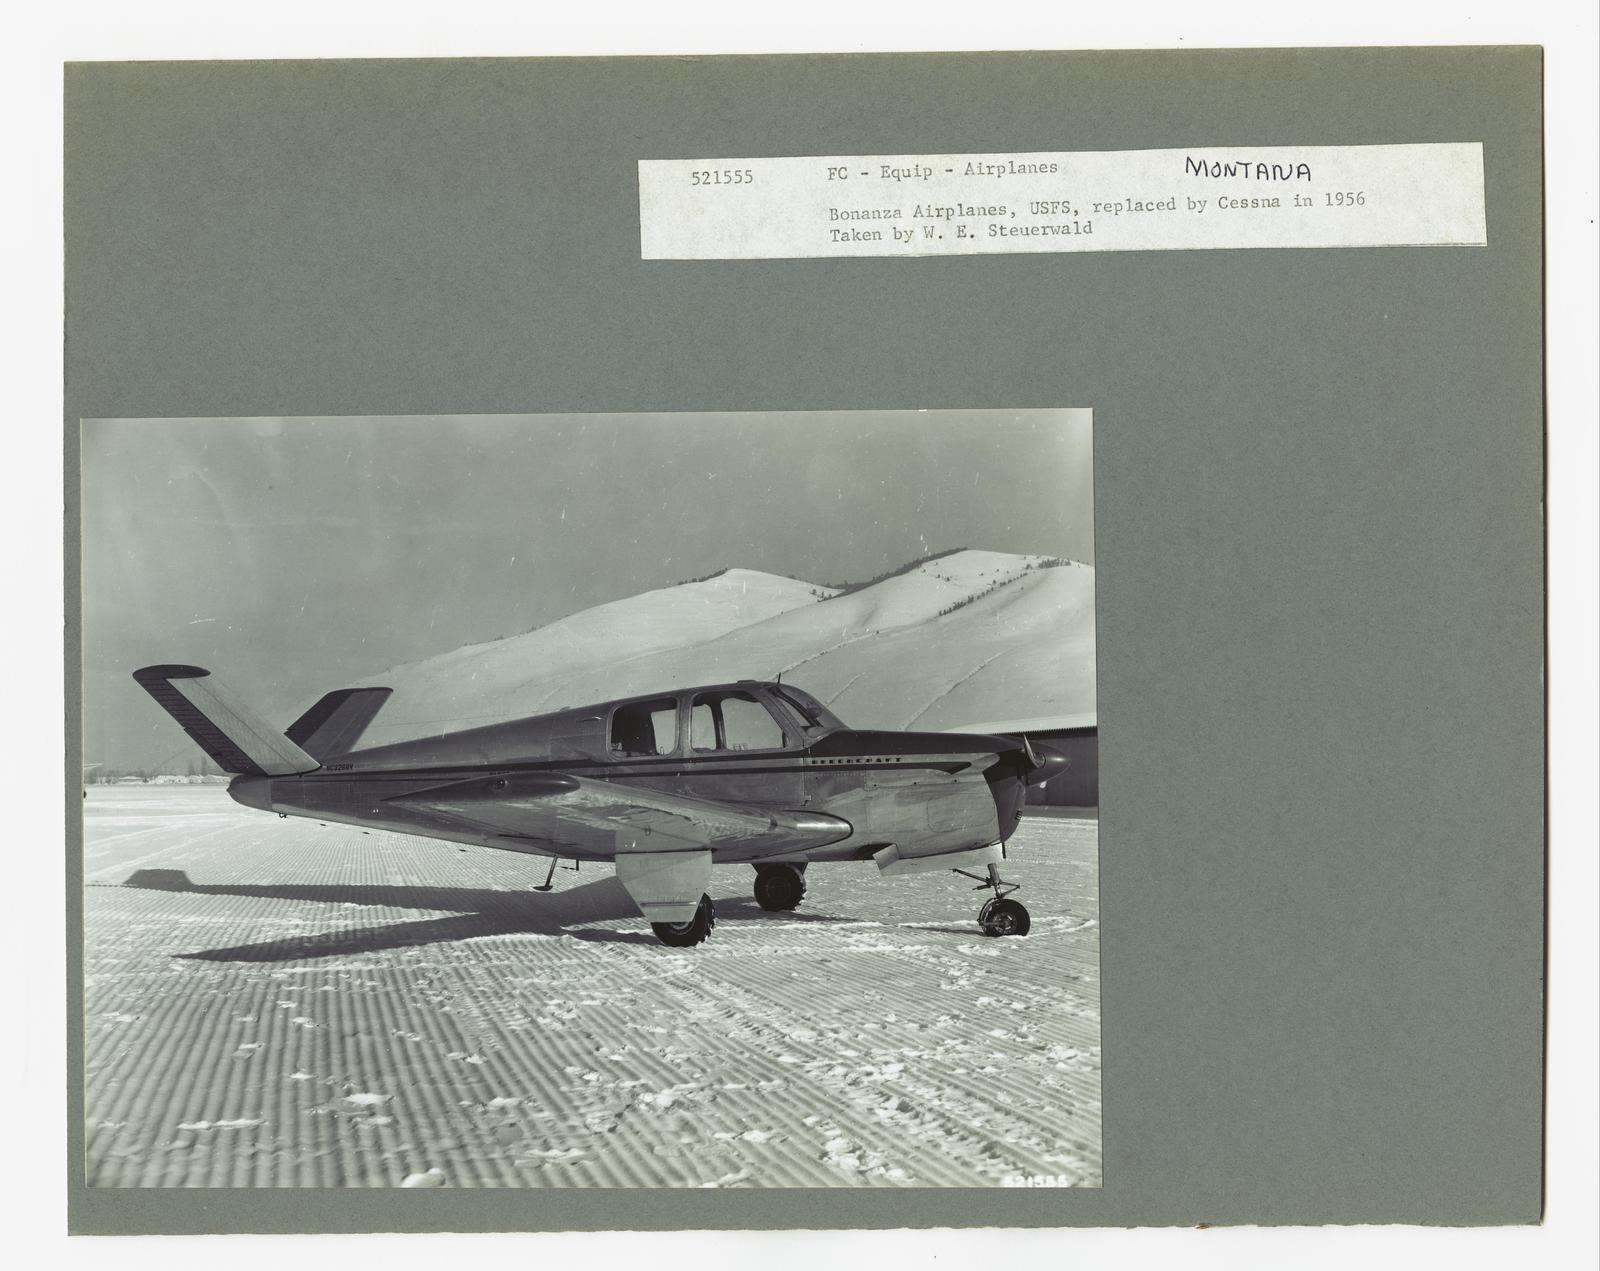 Aircraft and Airports - Montana   U S  National Archives